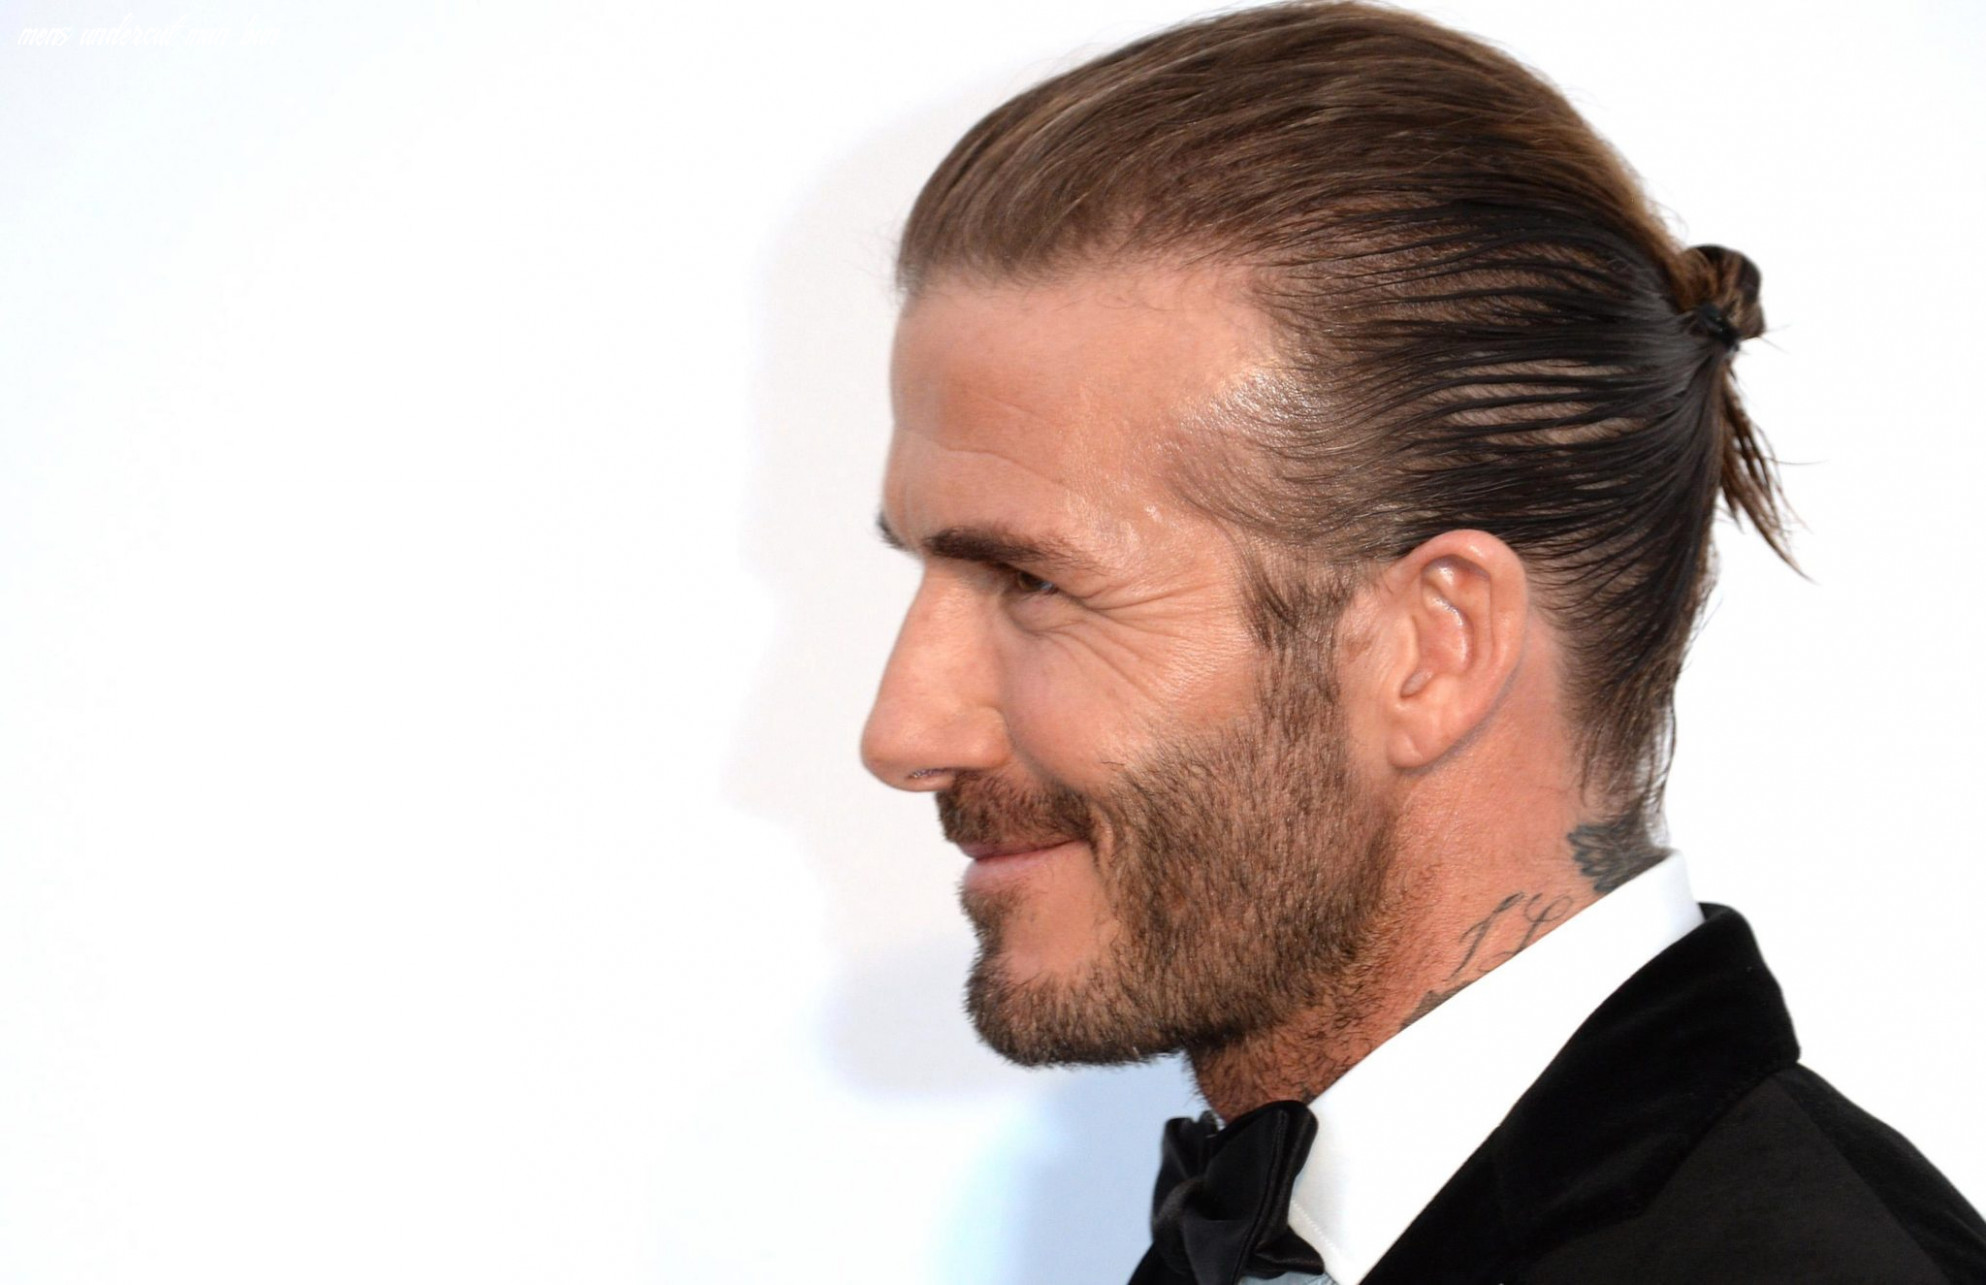 10 best man bun undercut hairstyles you need to see! | outsons